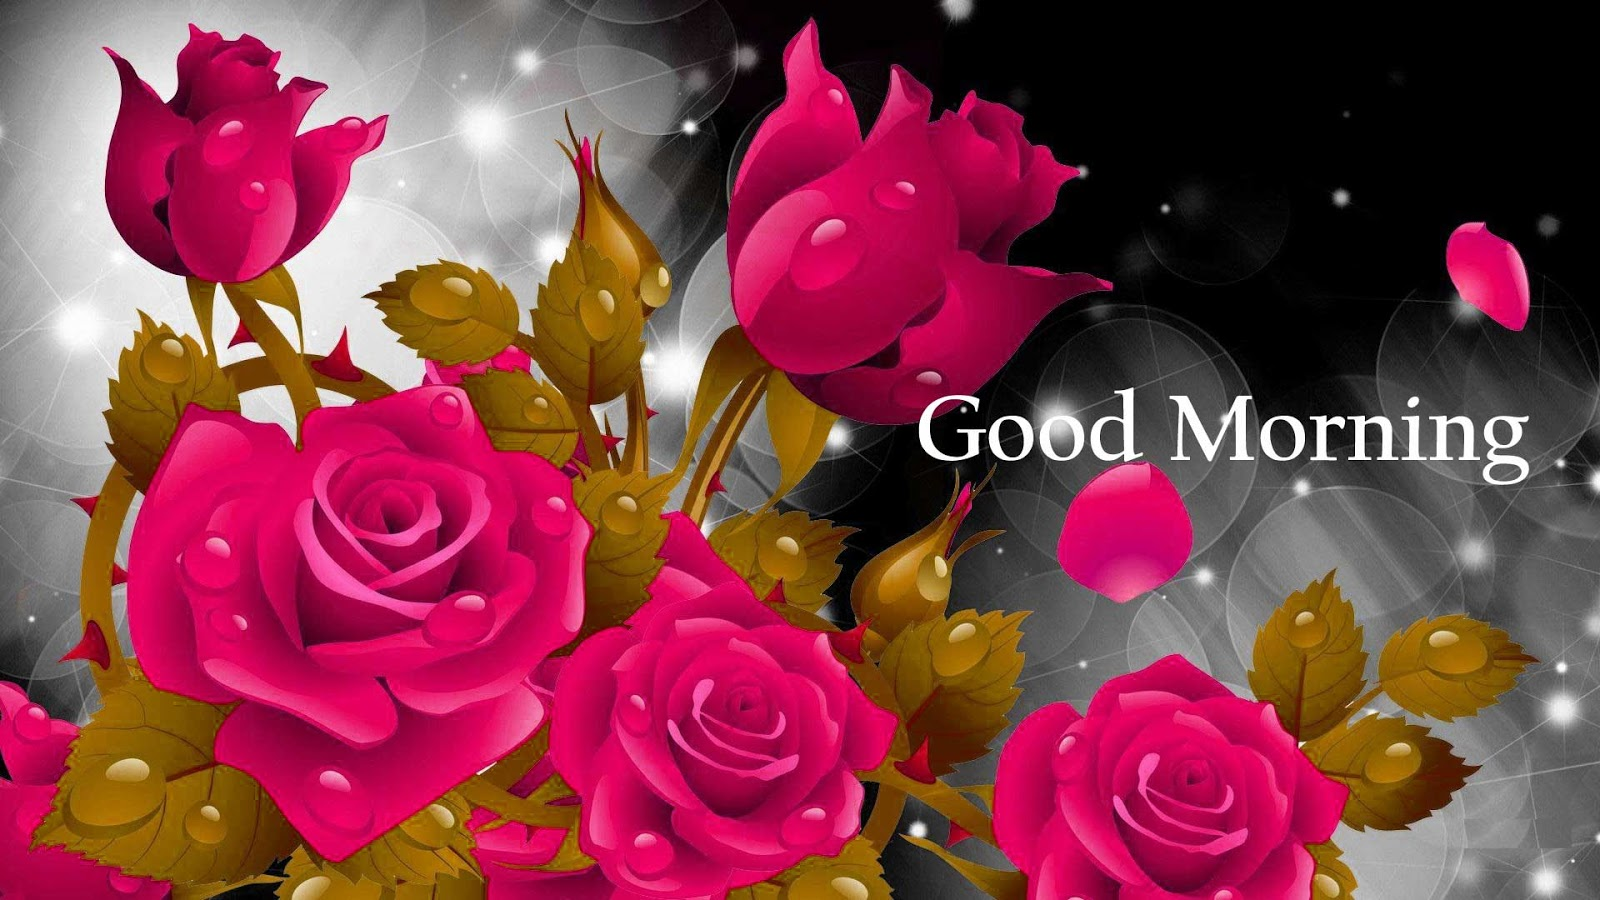 Good Morning Roses Download : Sweet good morning images for whatsapp free download